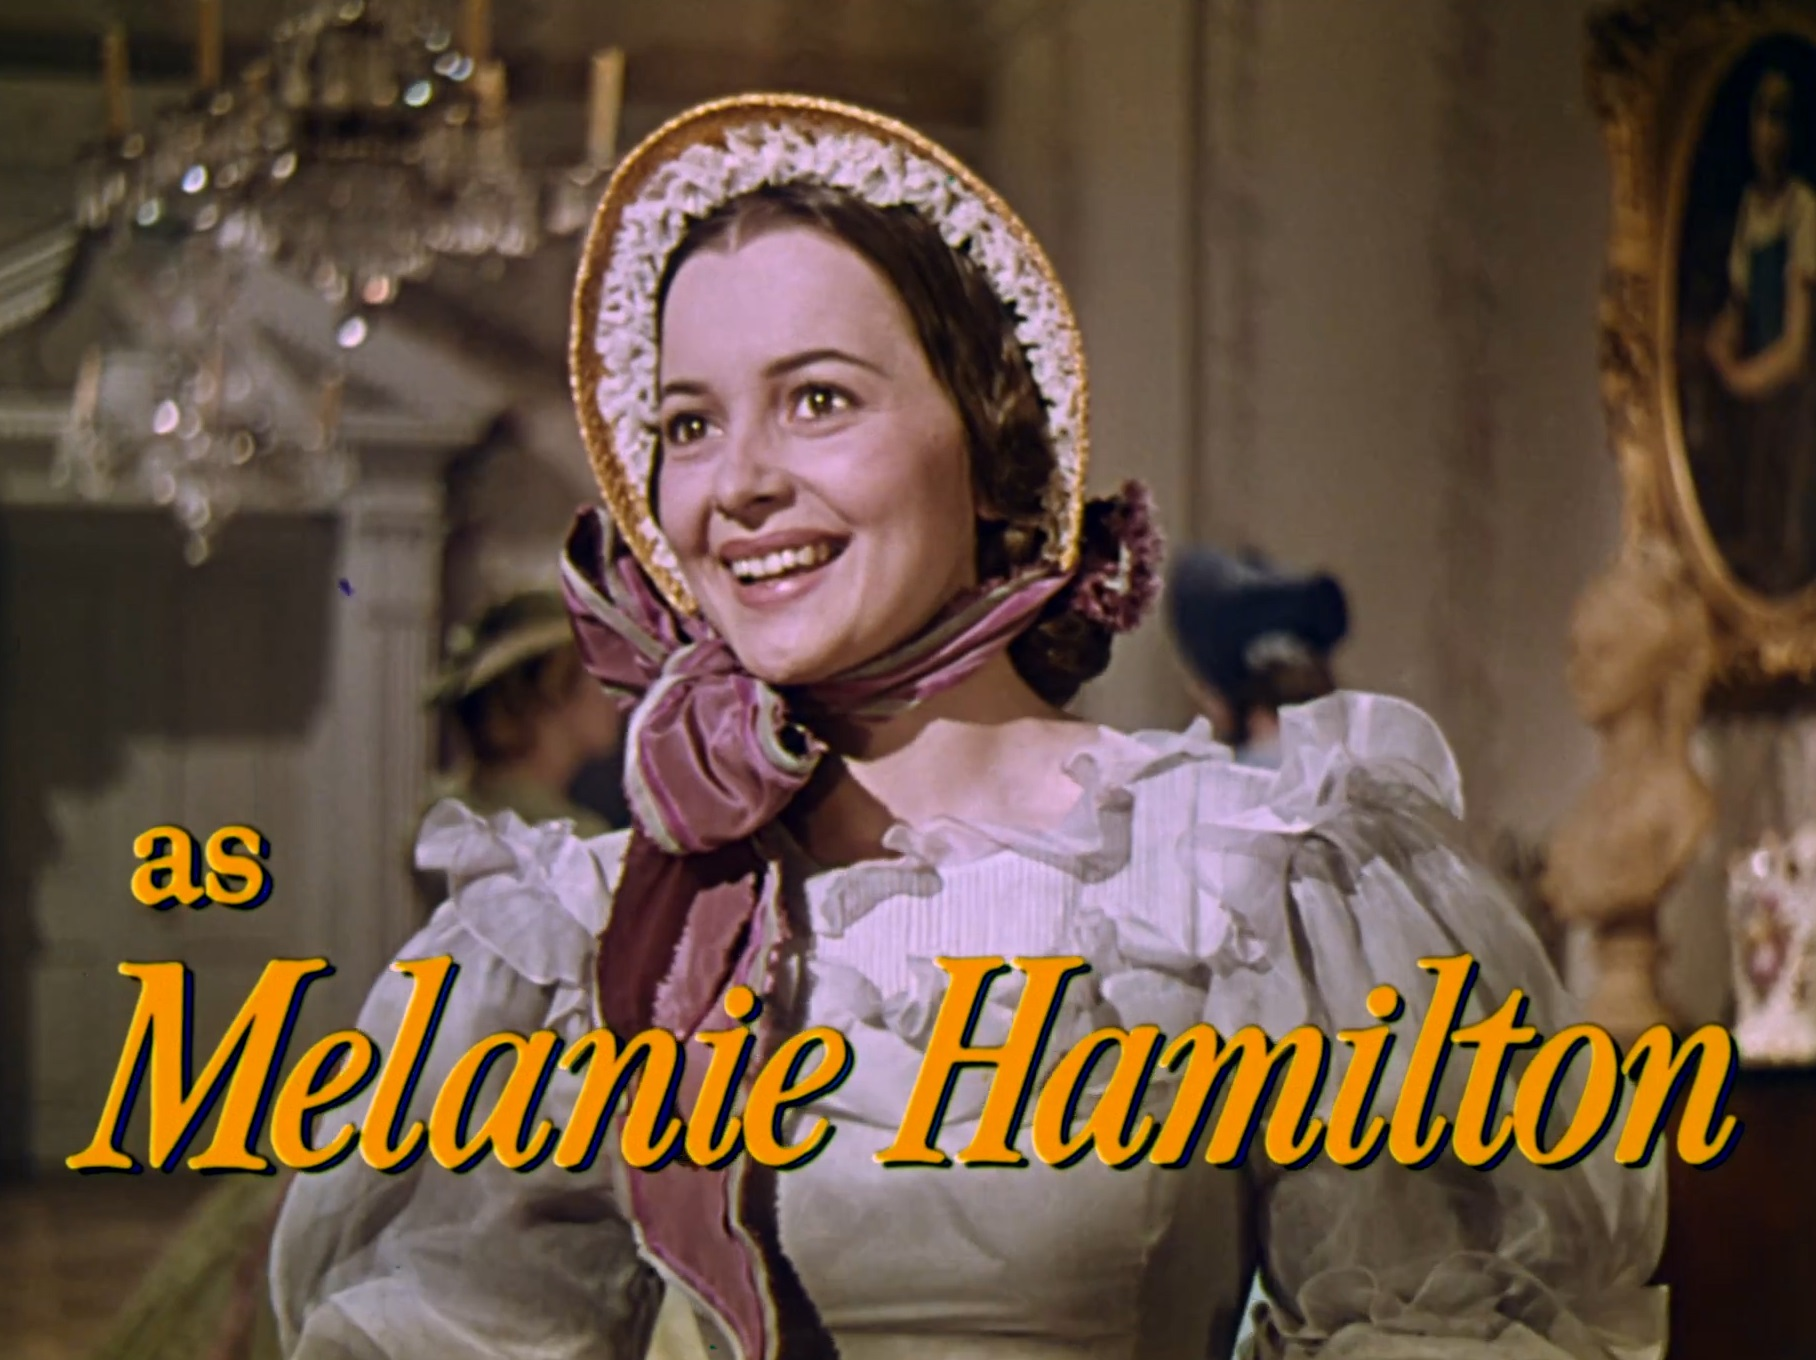 http://upload.wikimedia.org/wikipedia/commons/5/5b/Olivia_de_Havilland_as_Melanie_Hamilton_in_Gone_With_the_Wind_trailer.jpg